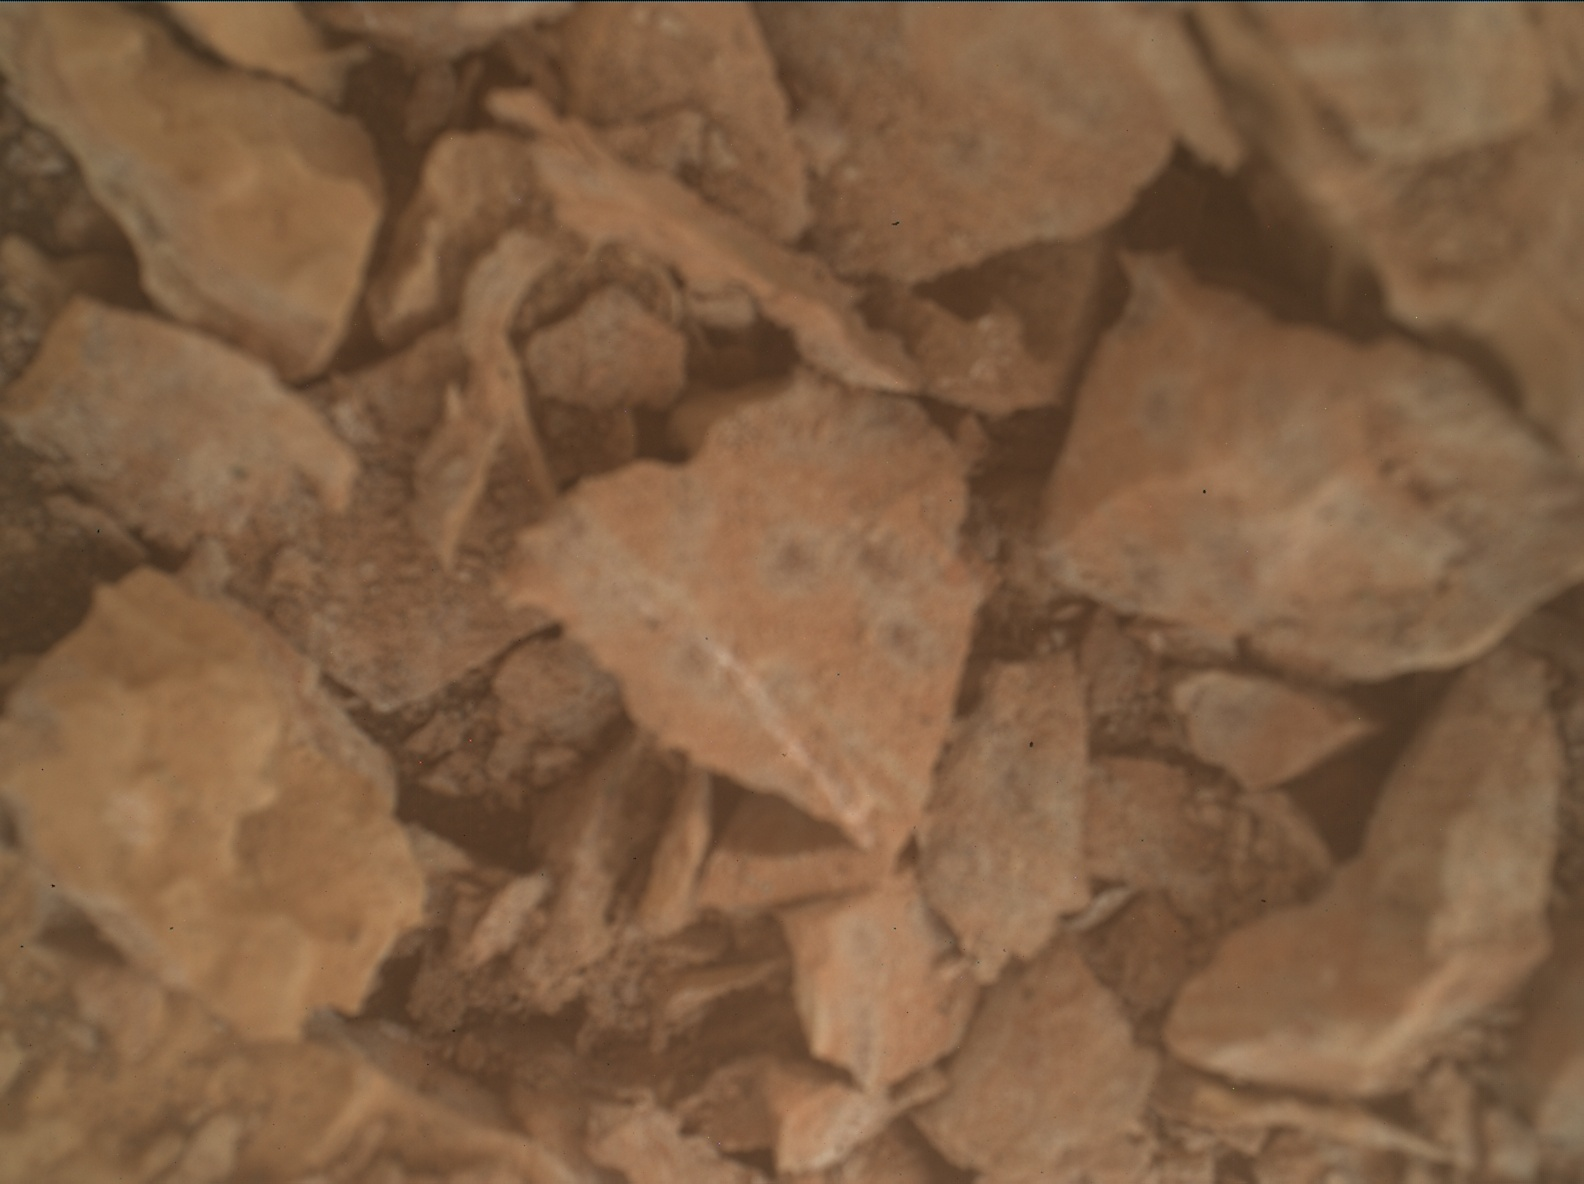 Nasa's Mars rover Curiosity acquired this image using its Mars Hand Lens Imager (MAHLI) on Sol 3110